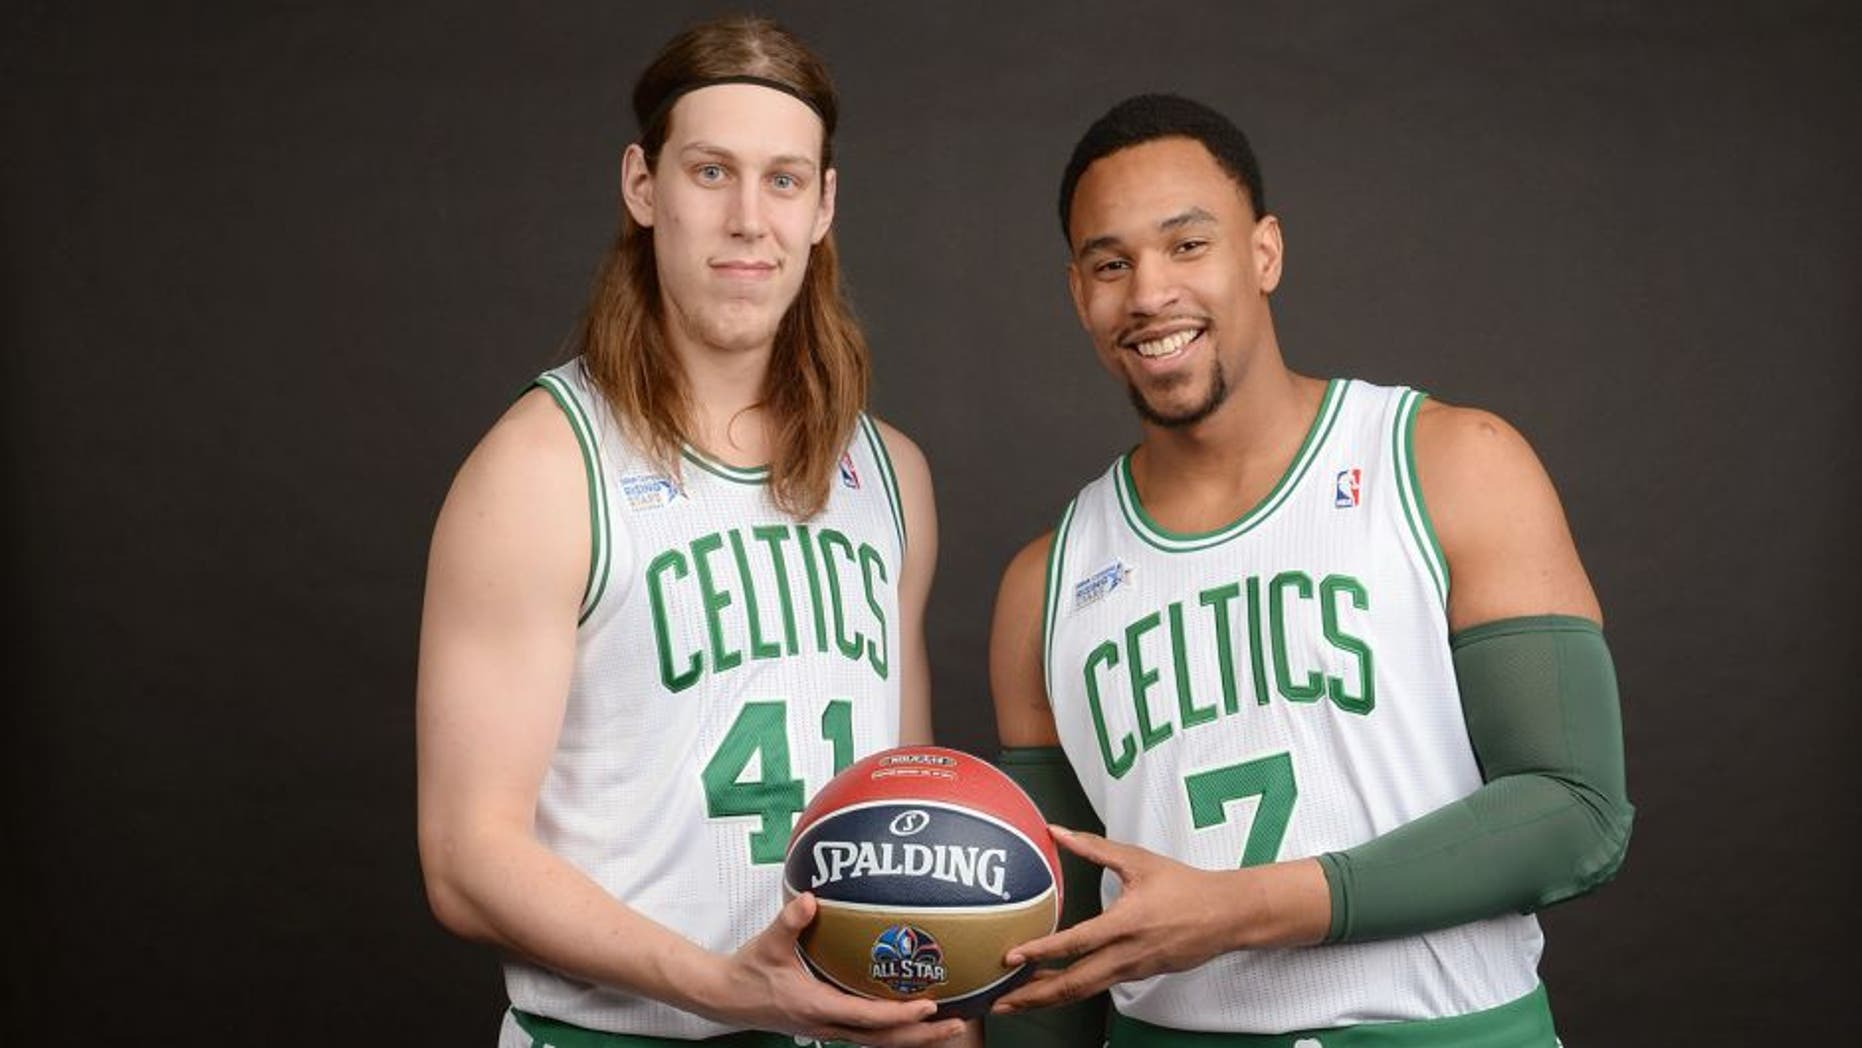 NEW ORLEANS, LA - FEBRUARY 14: Kelly Olynyk #41 and Jared Sullinger #7 of Team Webber poses for a portrait prior to the BBVA Compass Rising Stars Challenge 2014 as part of the 2014 NBA All-Star Weekend on February 13, 2014 at House of Blues in New Orleans, Louisiana. NOTE TO USER: User expressly acknowledges and agrees that, by downloading and/or using this Photograph, user is consenting to the terms and conditions of the Getty Images License Agreement. Mandatory Copyright Notice: Copyright 2014 NBAE (Photo by Jennifer Pottheiser/NBAE via Getty Images)